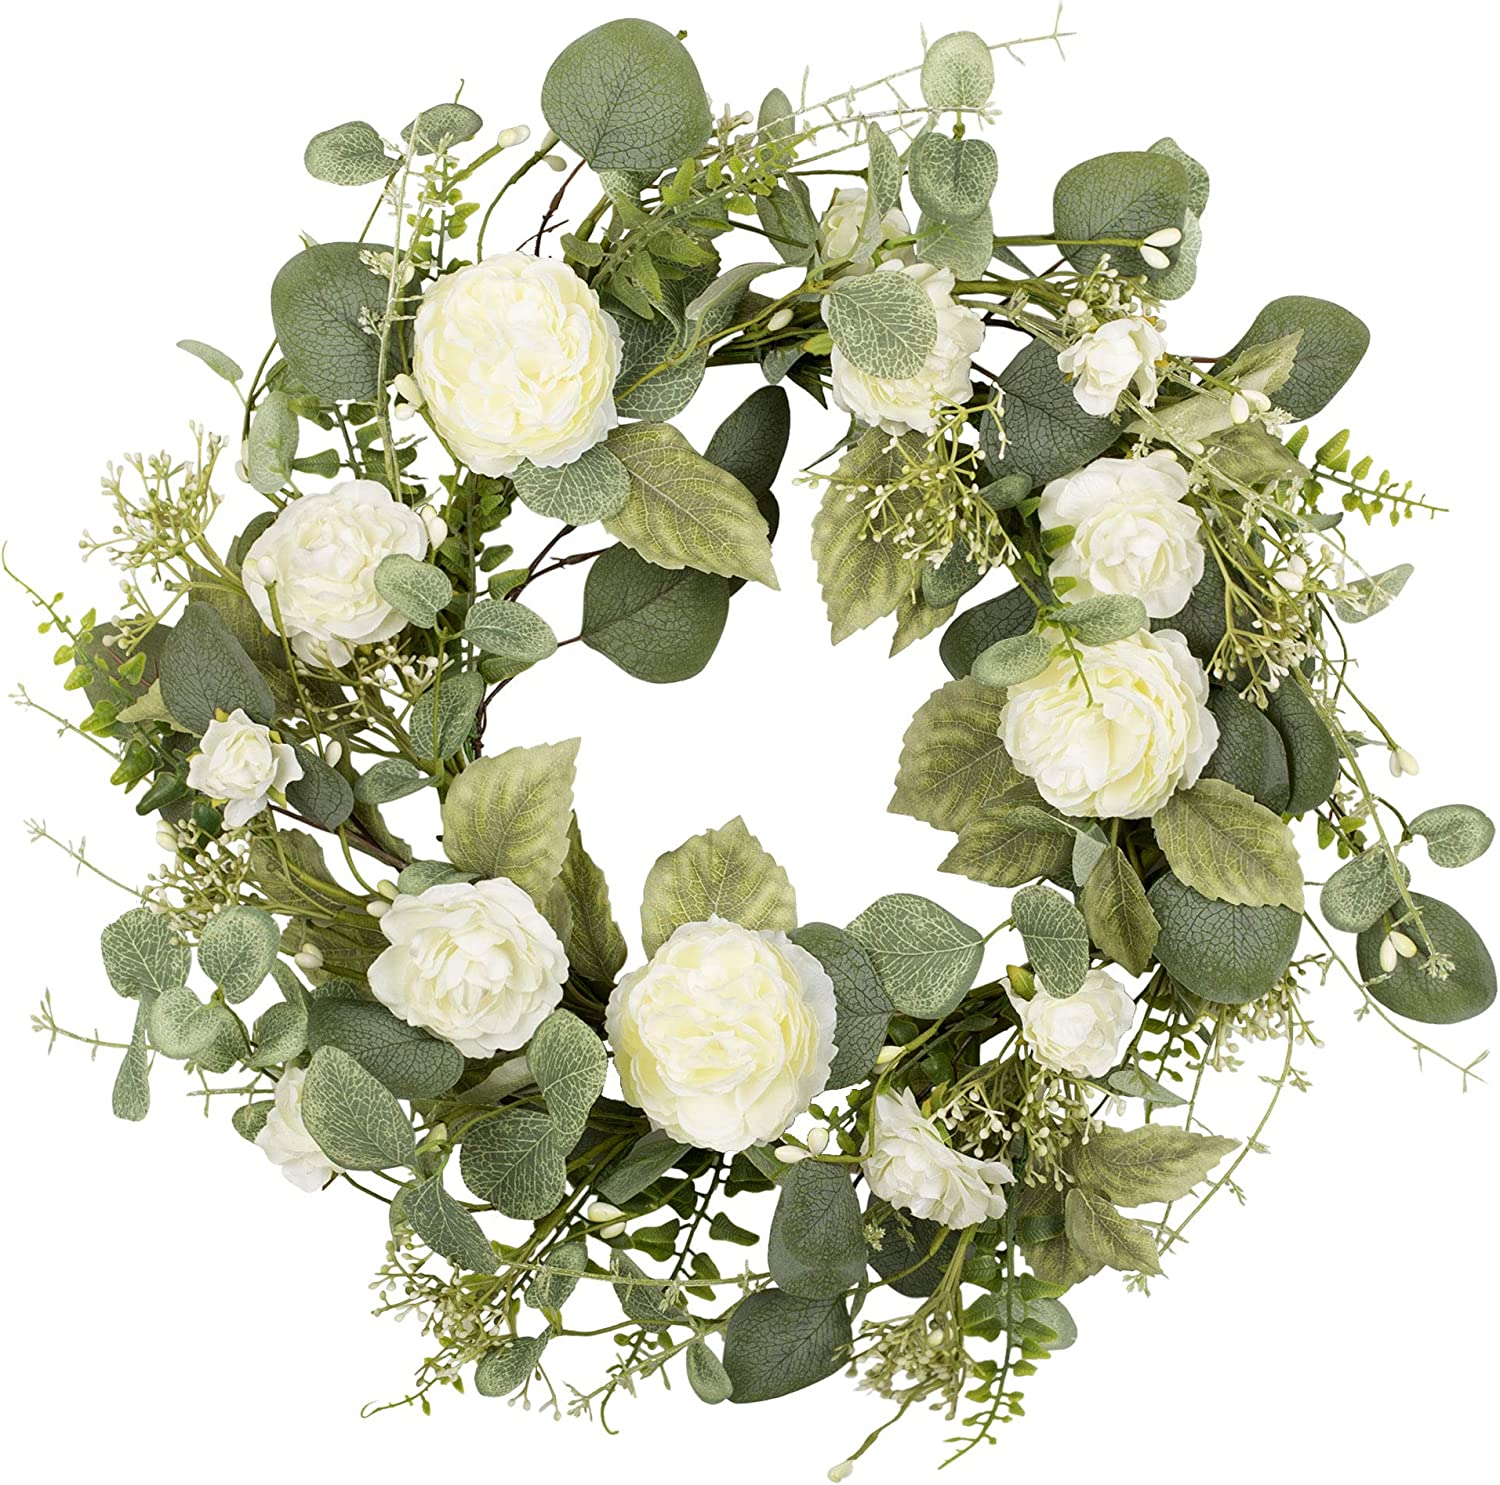 Amazon Com 18 Inch Artificial Spring Wreath White Peony Floral Wreath For Front Door Wall Wedding Party Home Decor Kitchen Dining